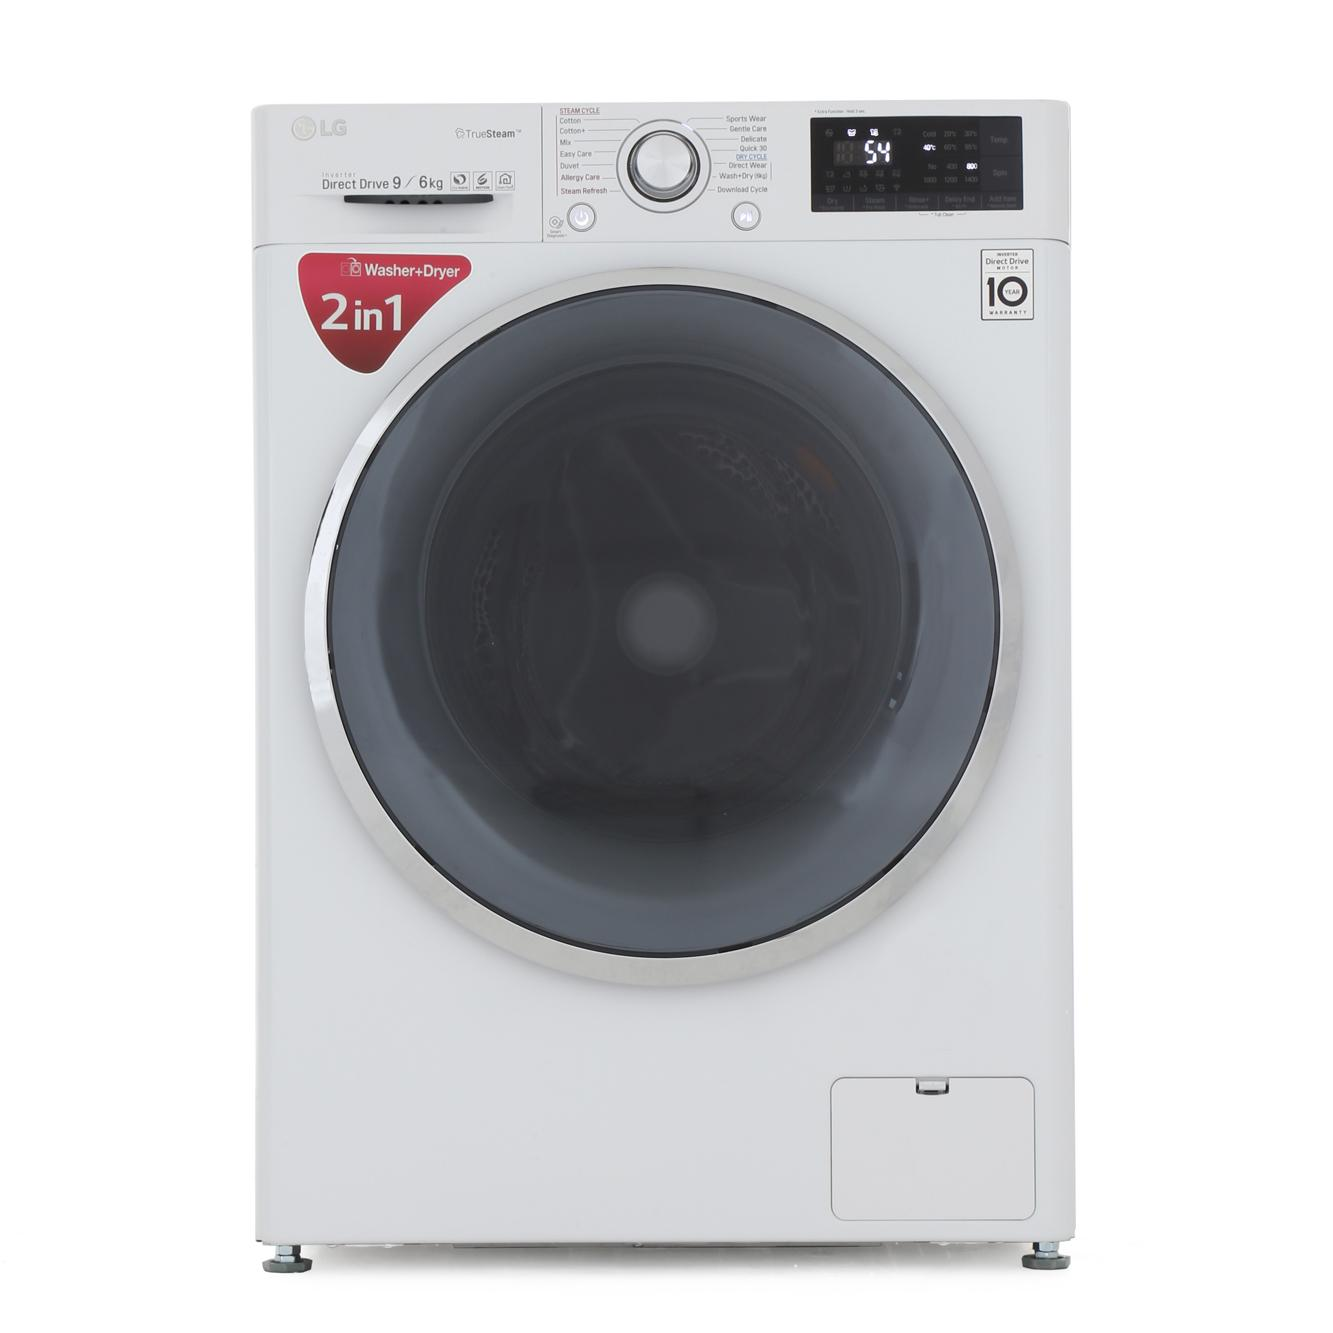 Buy Lg F4j8fh2w Washer Dryer White Marks Electrical